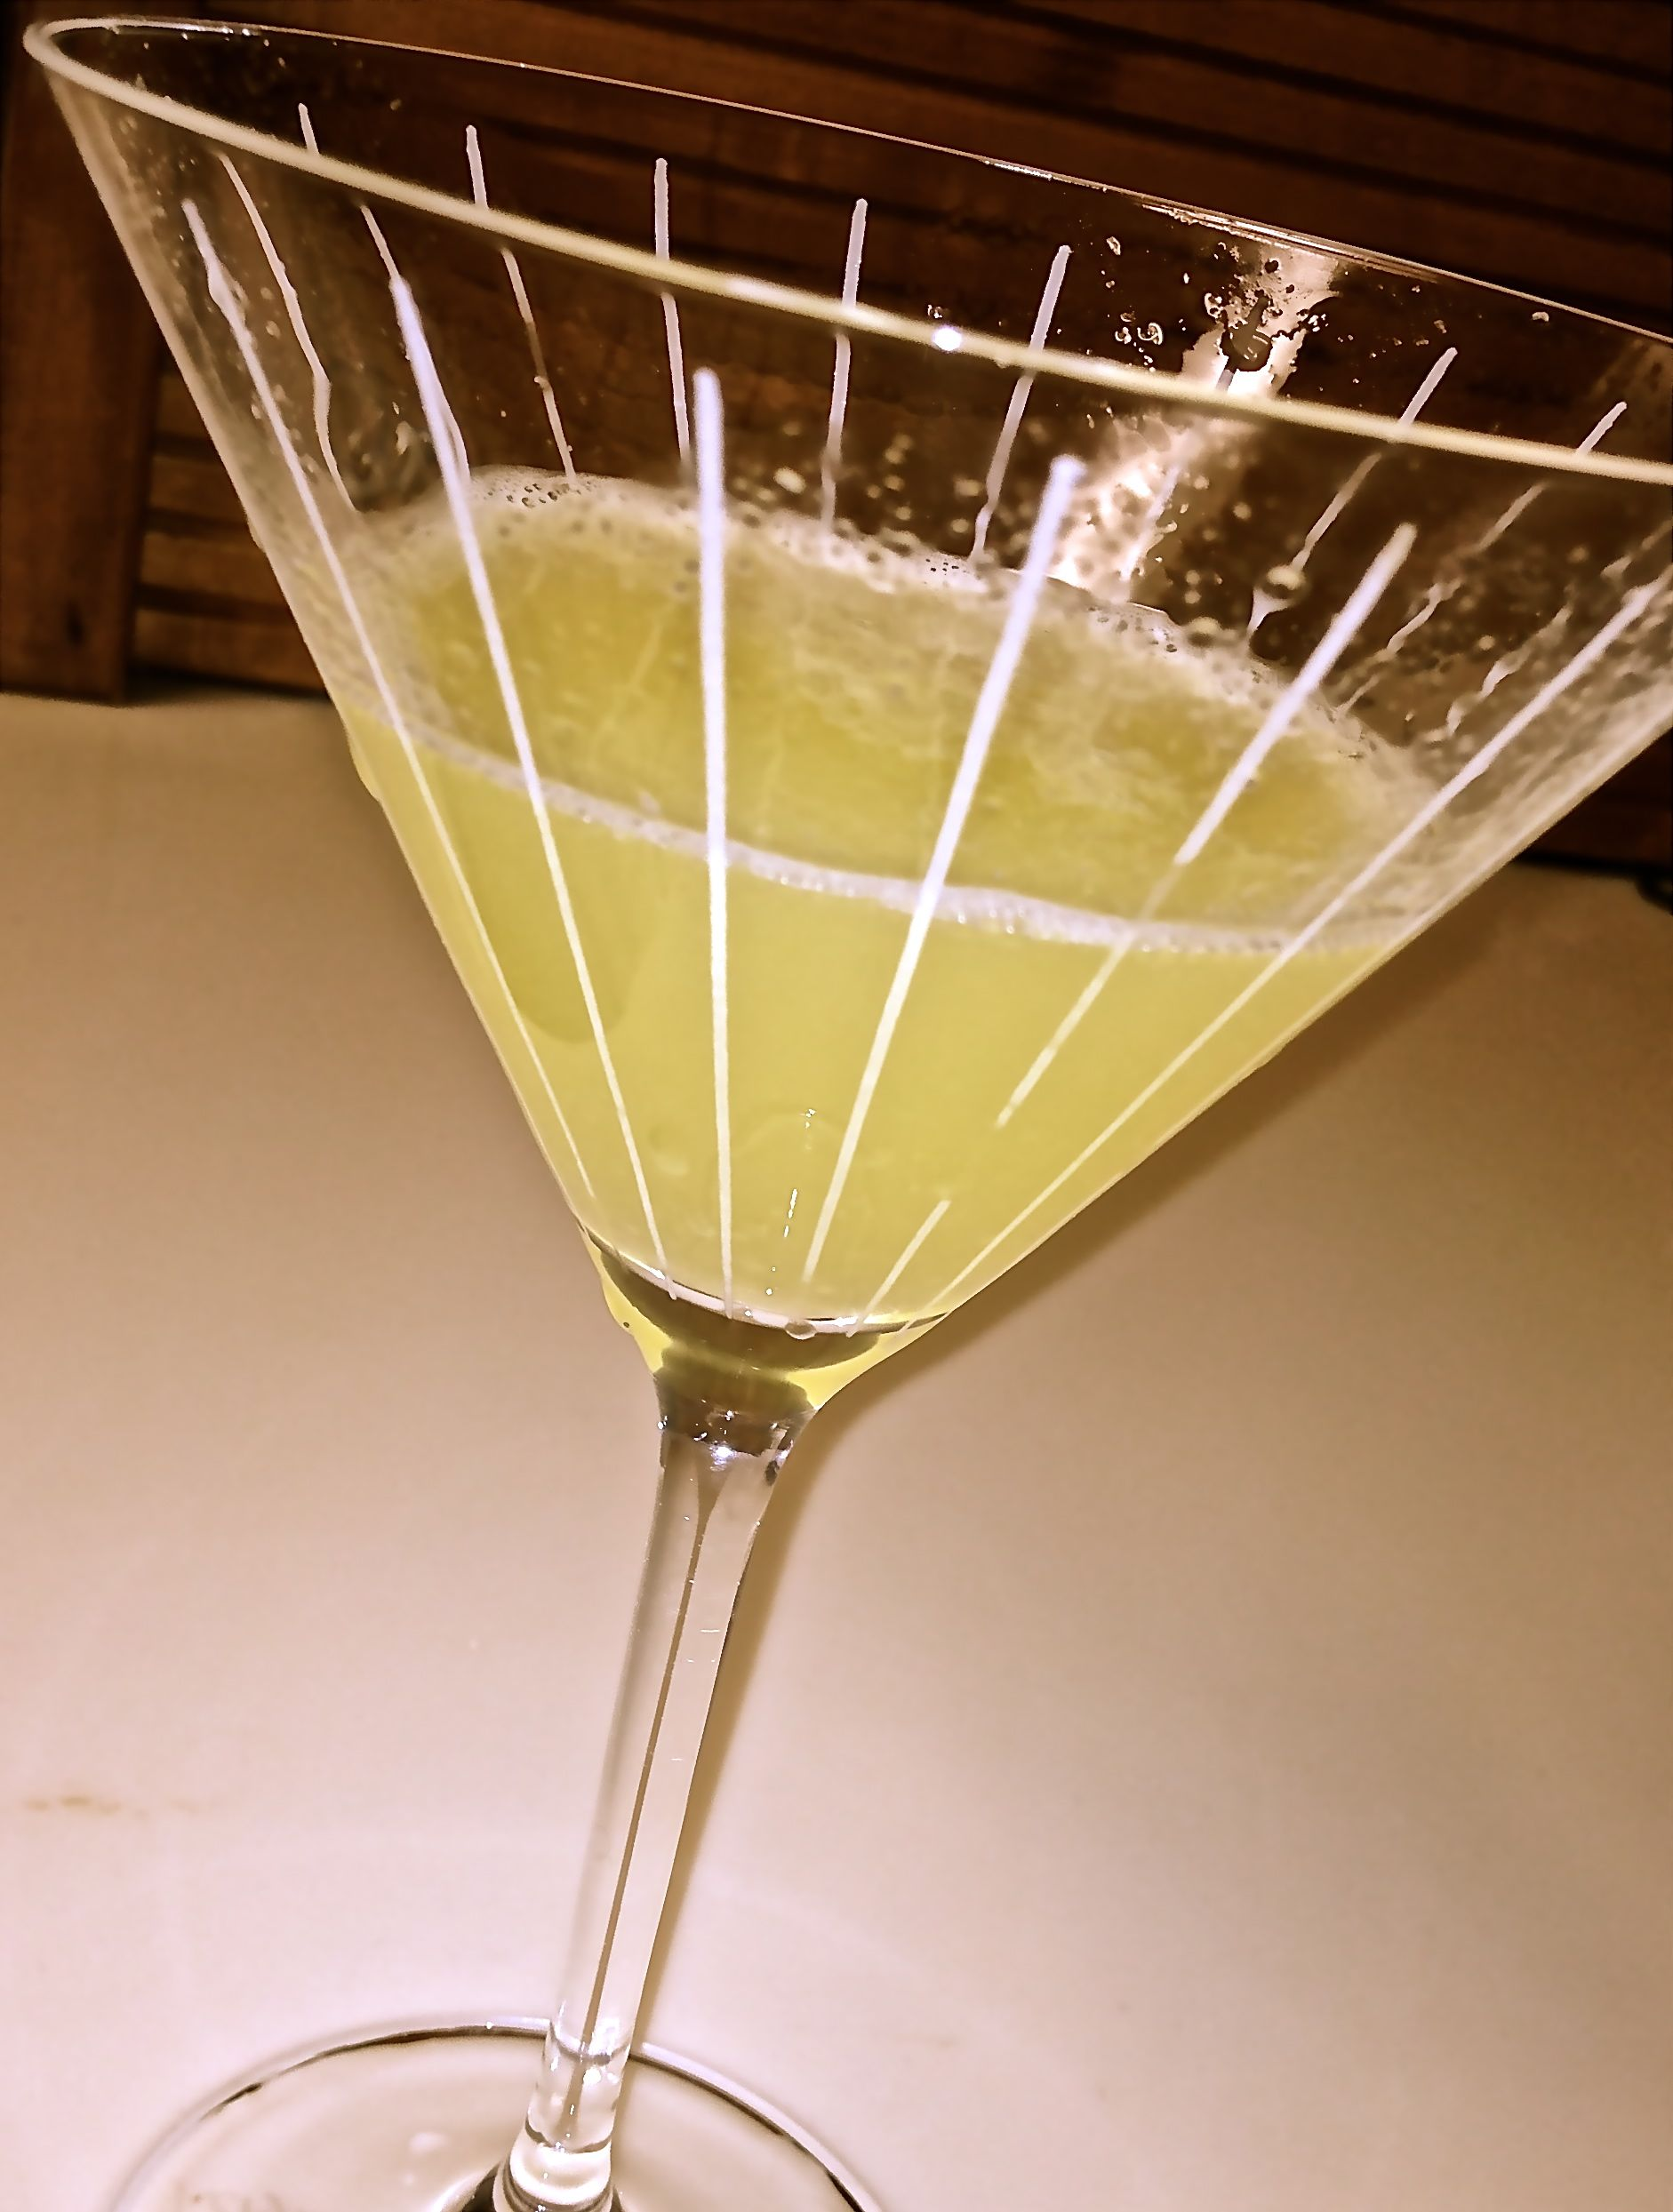 Refreshing, yet deceptively potent, Roger's Lemon Drop Martini helped us change course when our vacations plans were dealt a wallop by Superstorm Sandy.